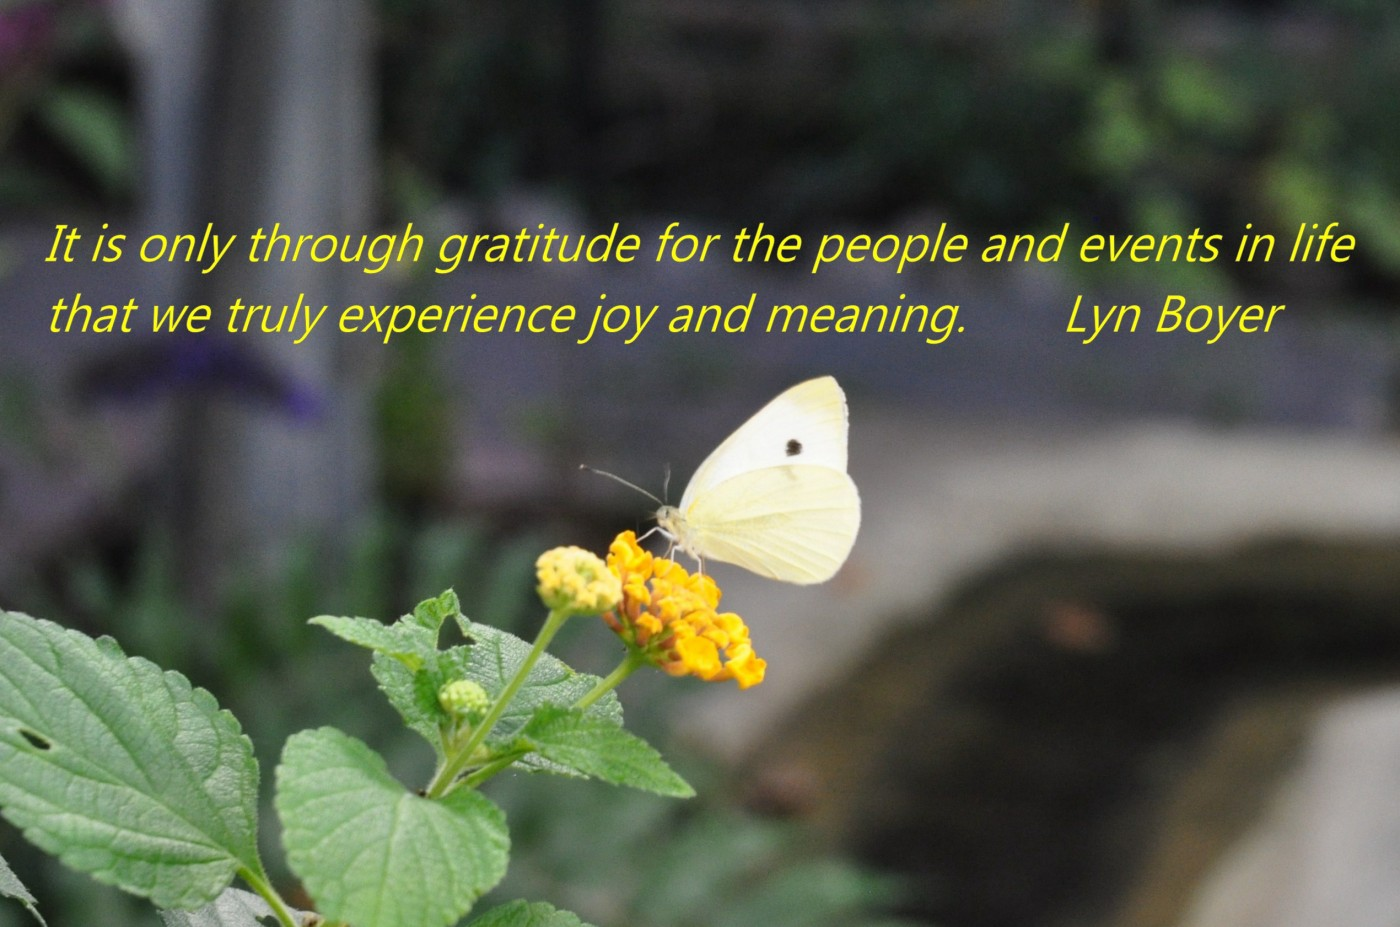 It is only through gratitude for the people and events in life that we truly experience joy and meaning. Lyn Boyer